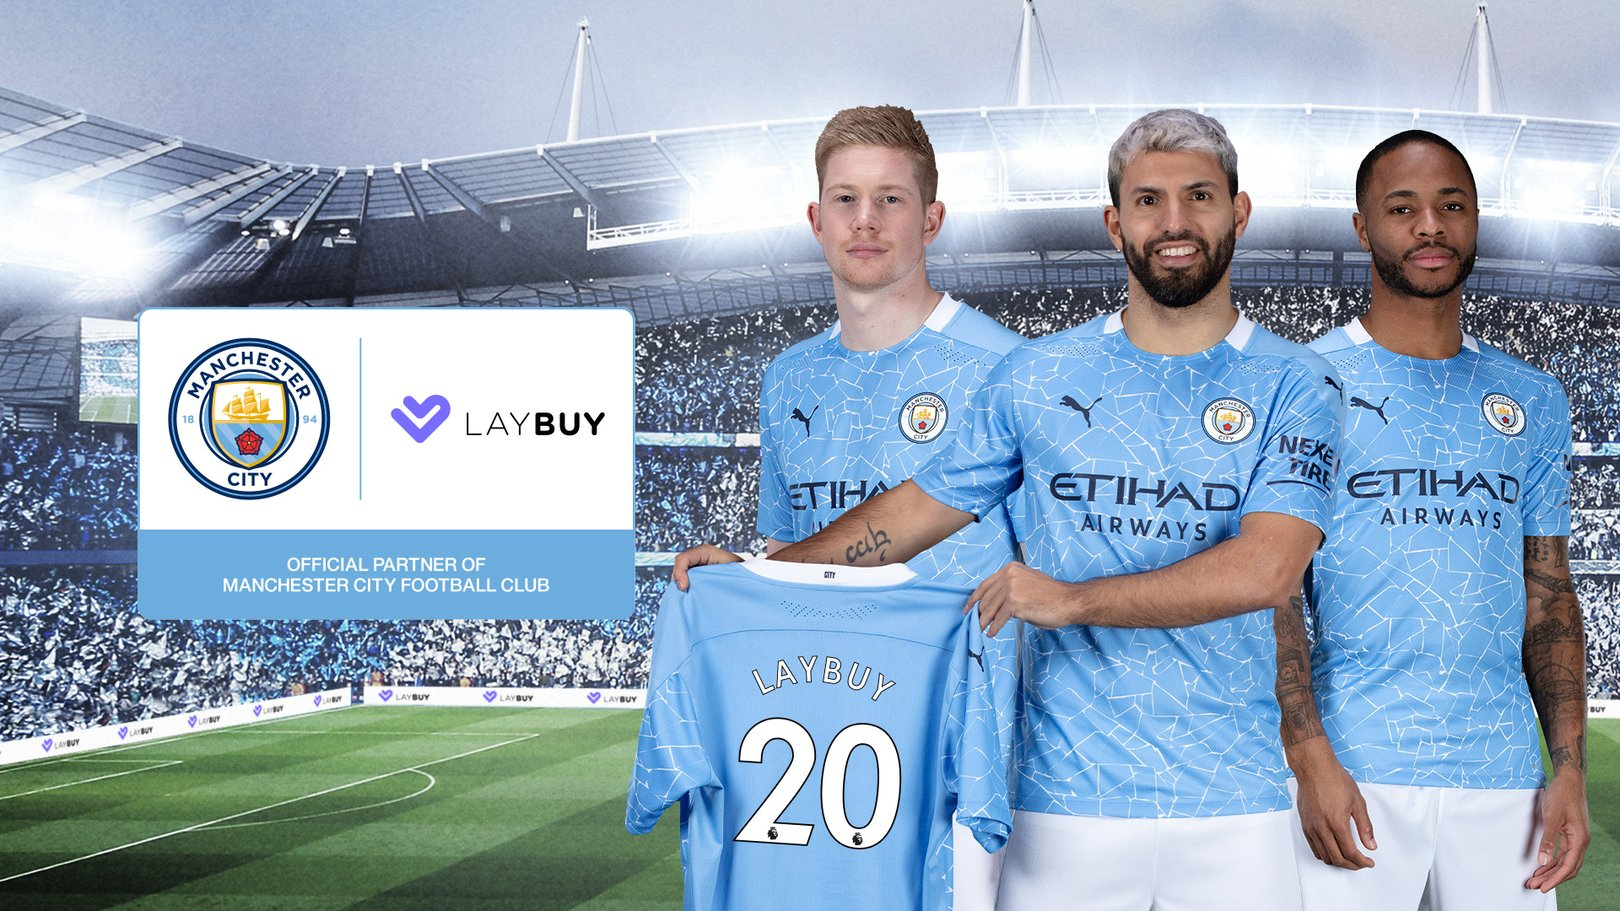 City and Laybuy confirm partnership agreement